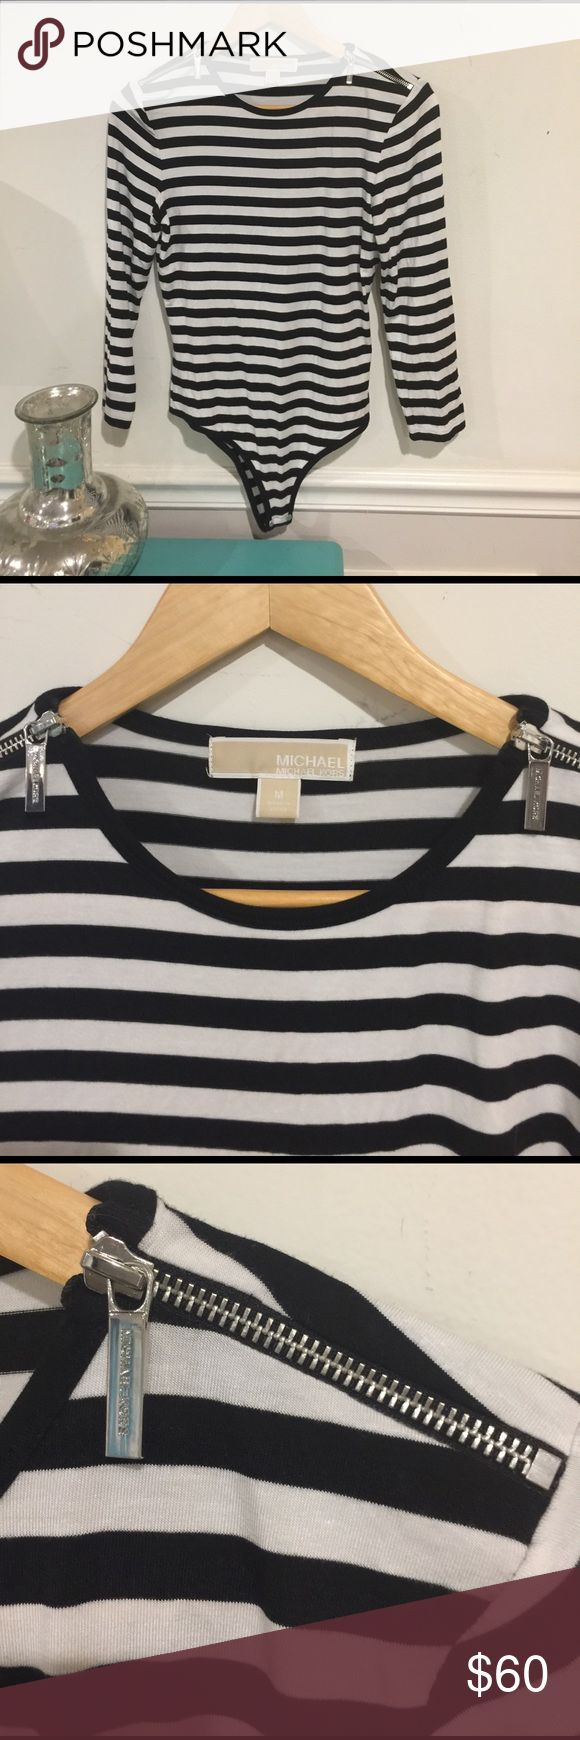 MICHAEL KORS EUC Striped bodysuit. Black and white EUC. Wore one time. Black and white stripes with snap crotch. Super soft and stretchy. Looks awesome tucked into a high waisted bottom. Silver zipper detail and neckline. Size medium Michael Kors Tops Tees - Long Sleeve